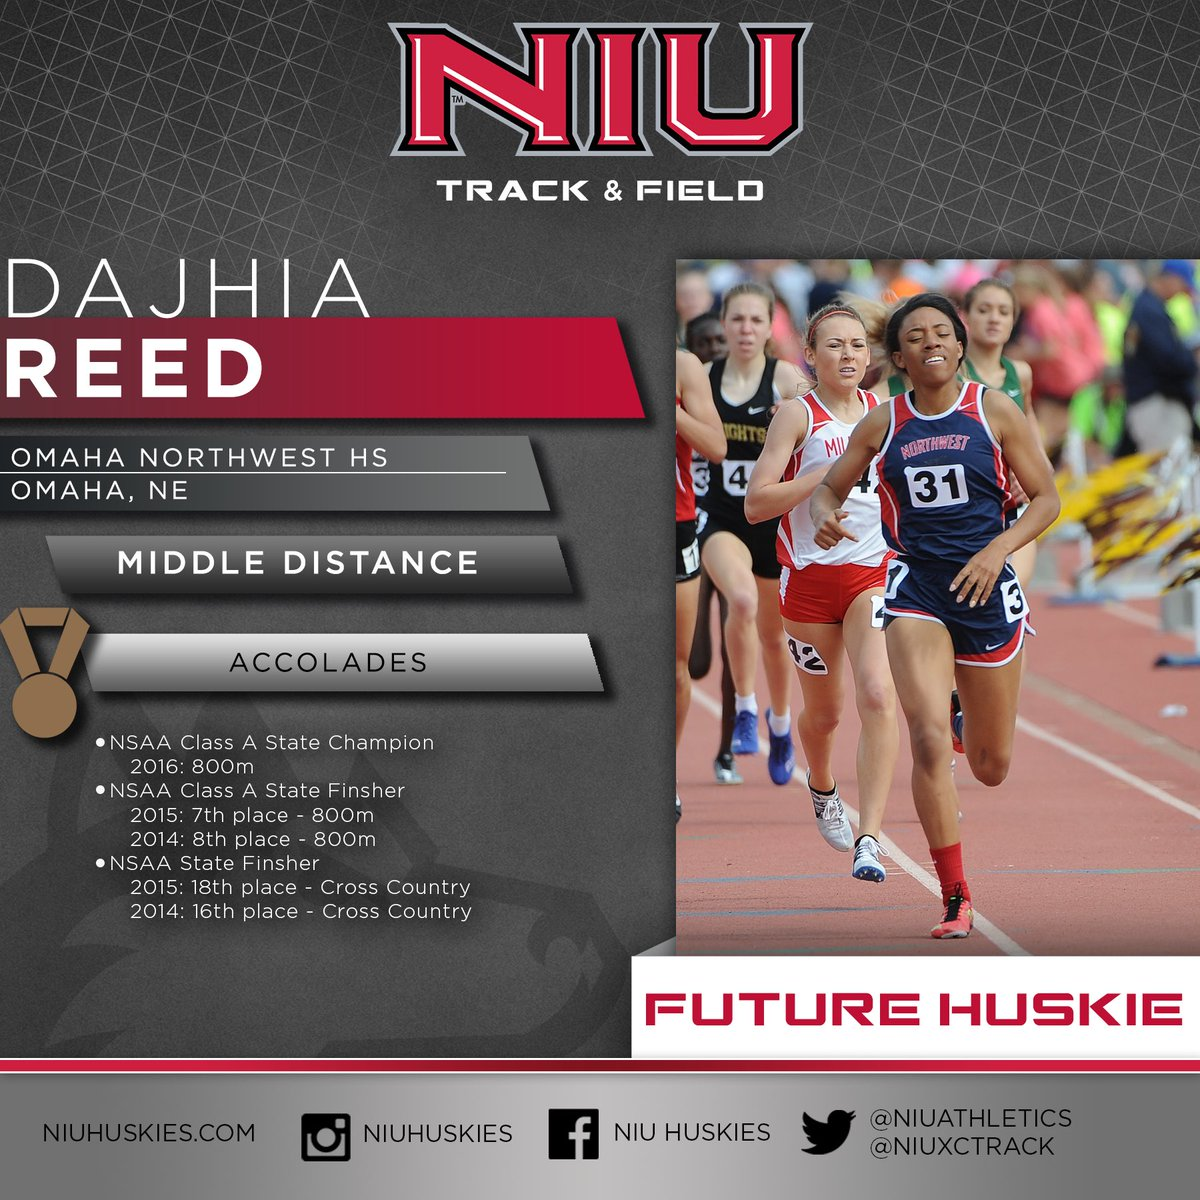 """Taking """"Once a Husky, always a Husky"""" to another level!  Congratulations on your commitment Dajhia! 🐾 🏅"""